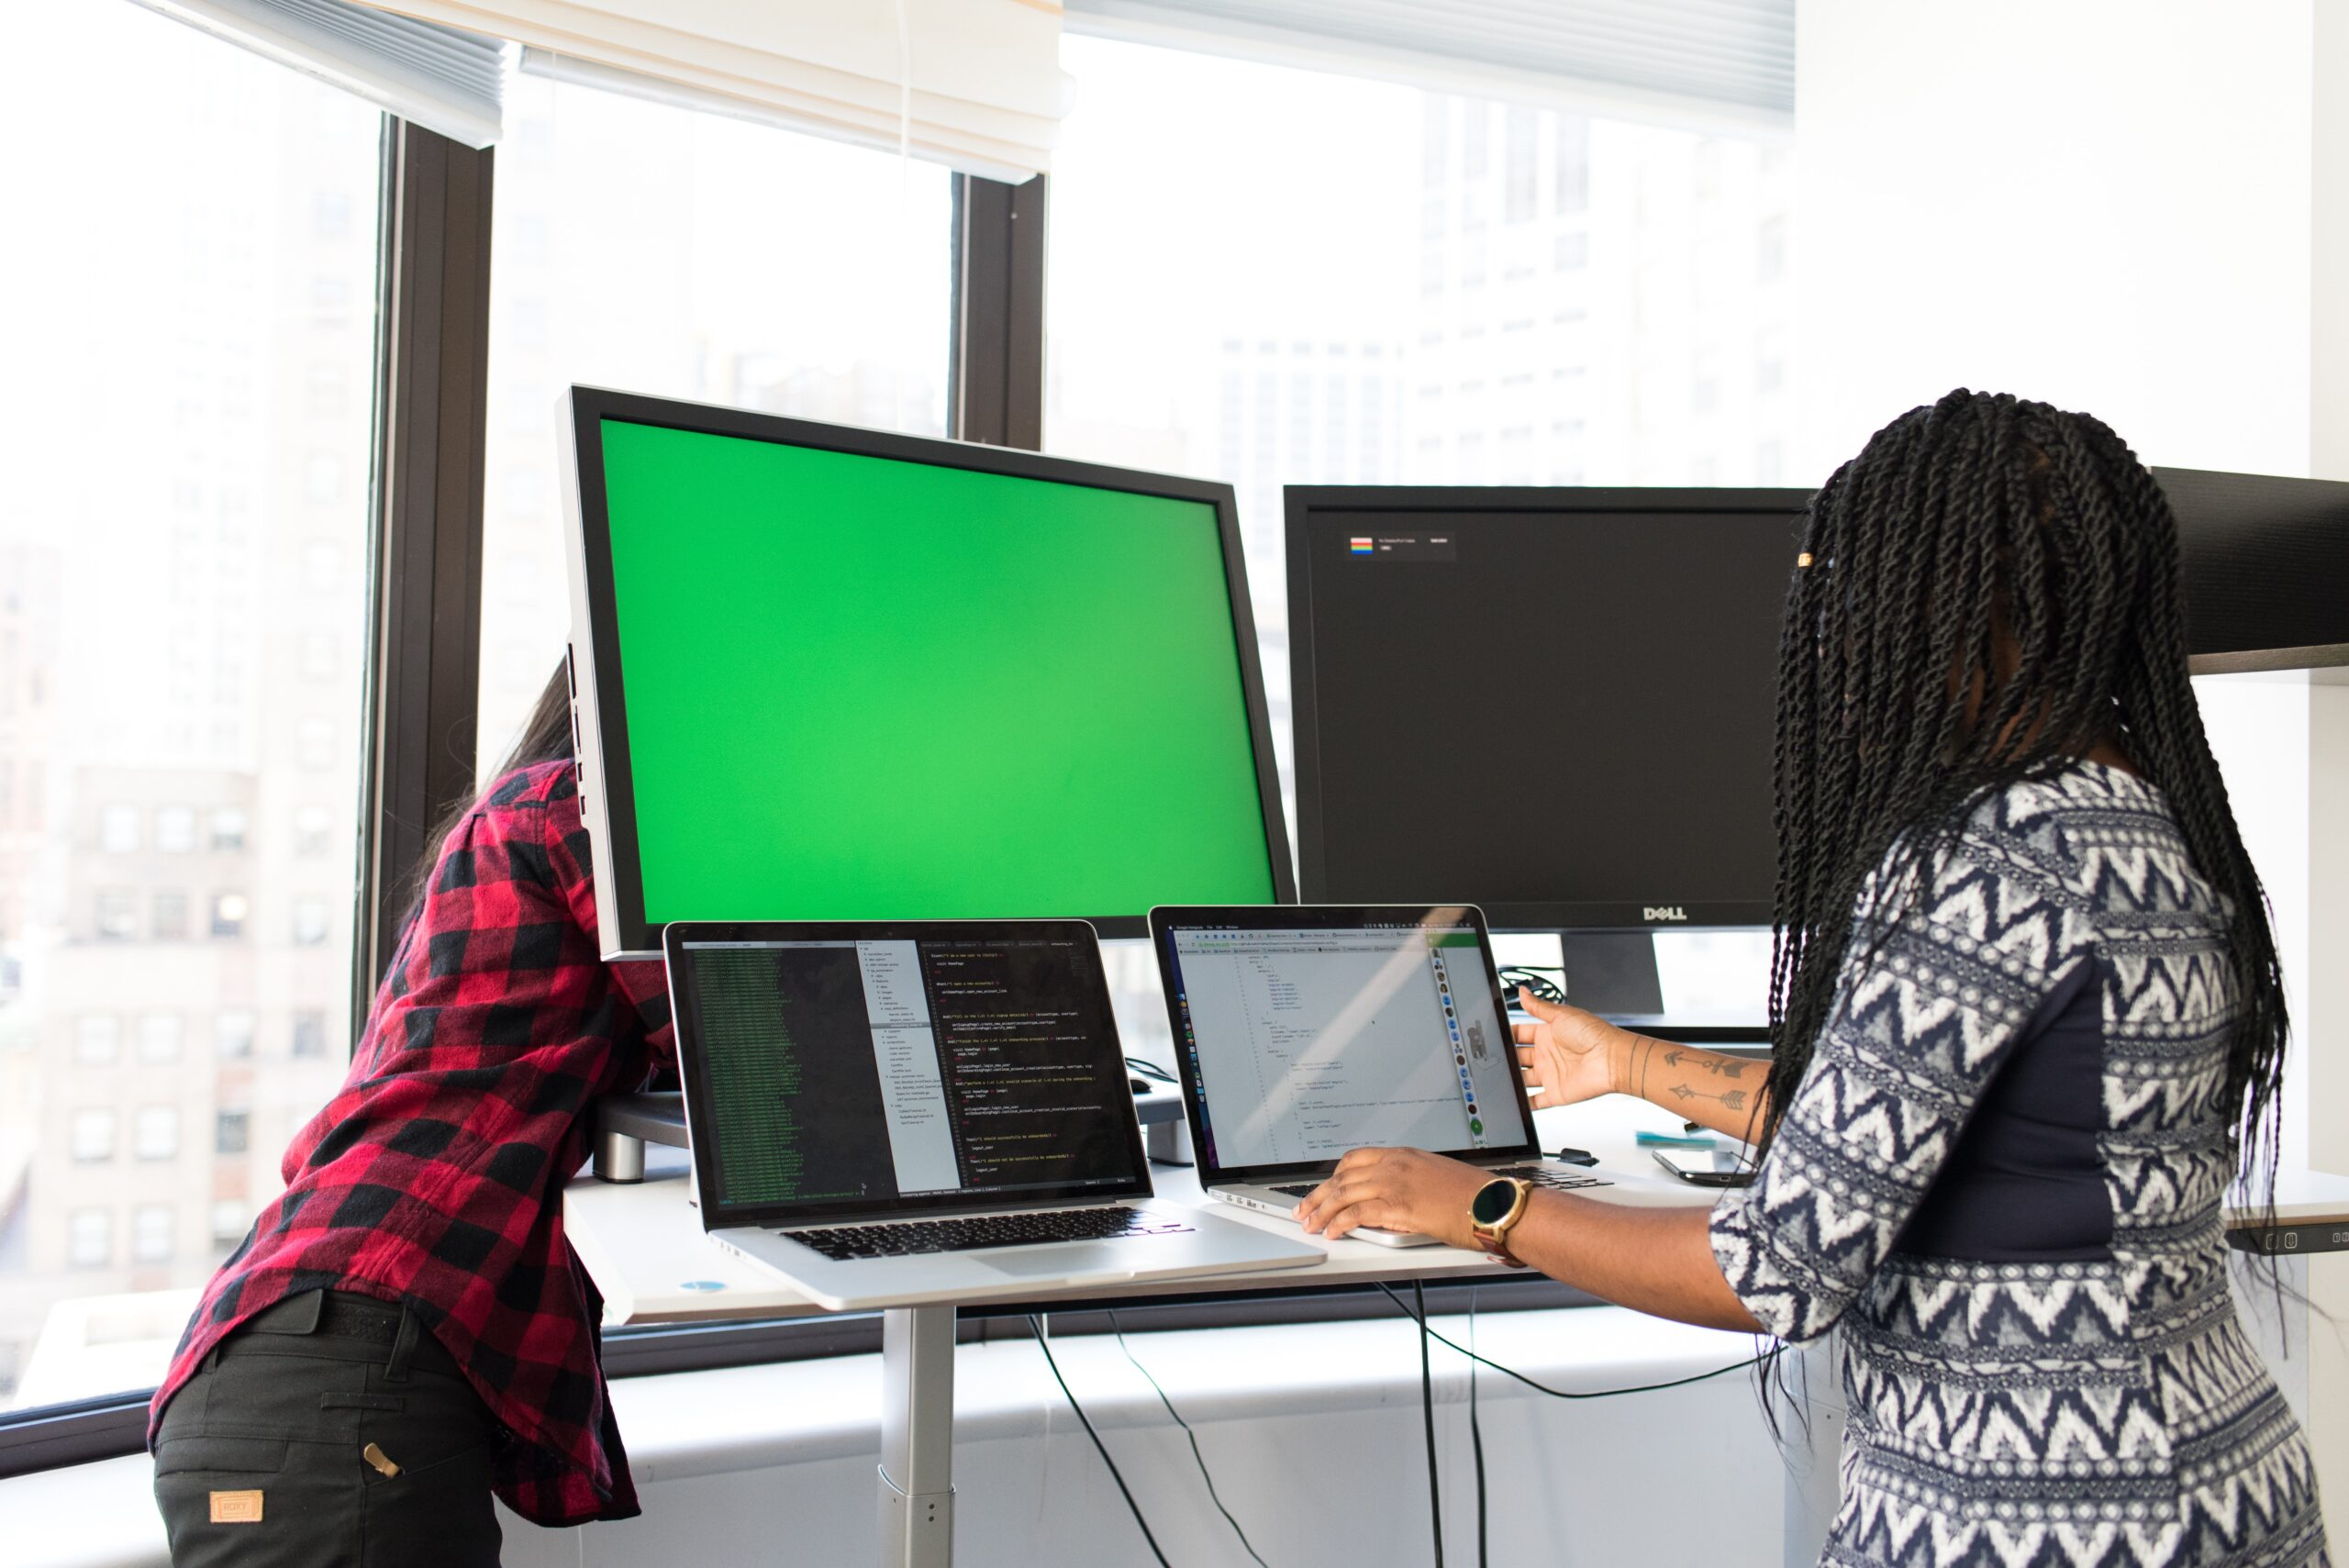 A woman working at a standing desk at two monitors